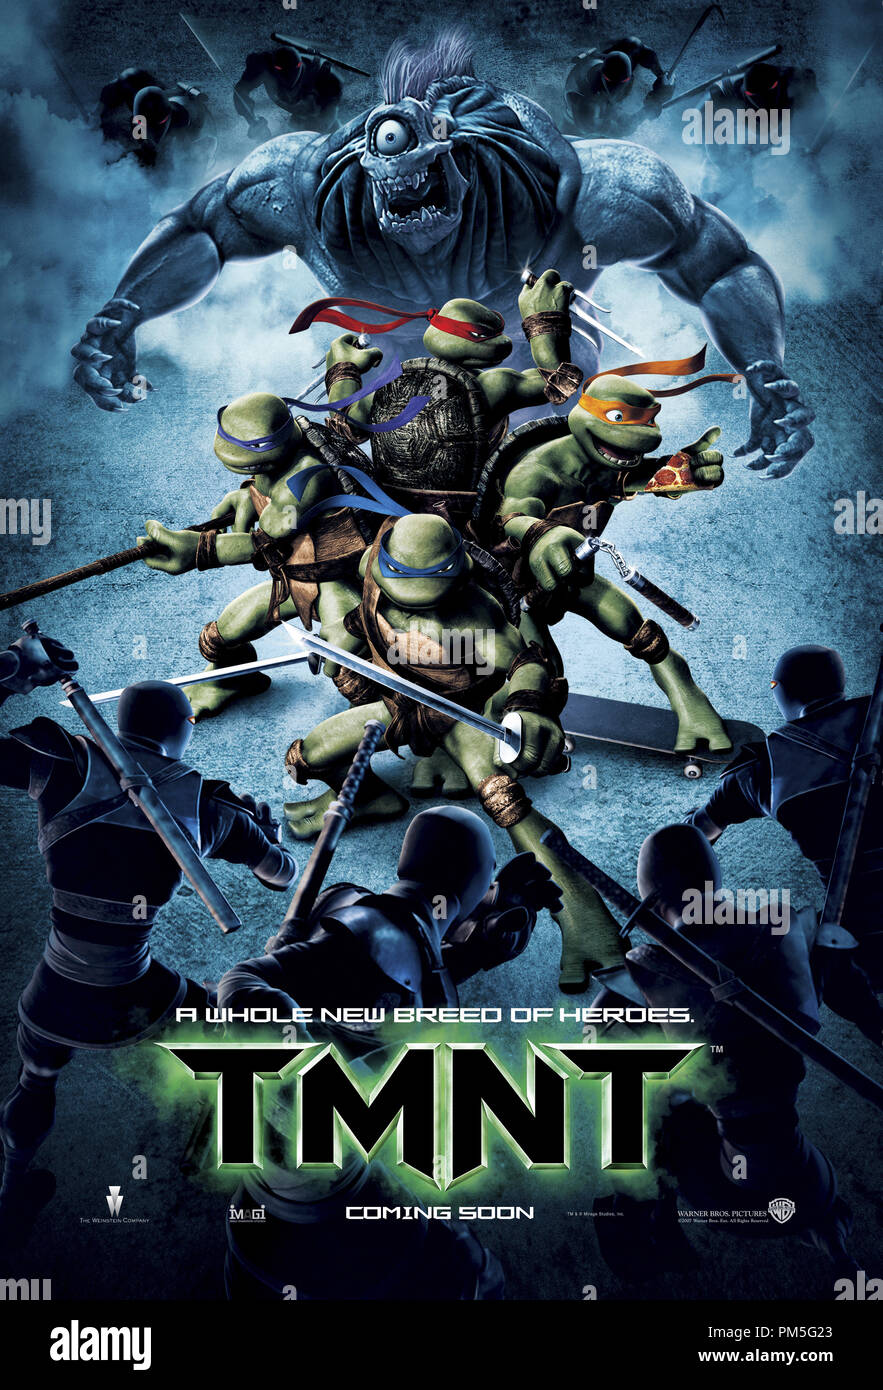 https www alamy com tmnt teenage mutant ninja turtles poster 2007 warner file reference 307381829tha for editorial use only all rights reserved image218939899 html